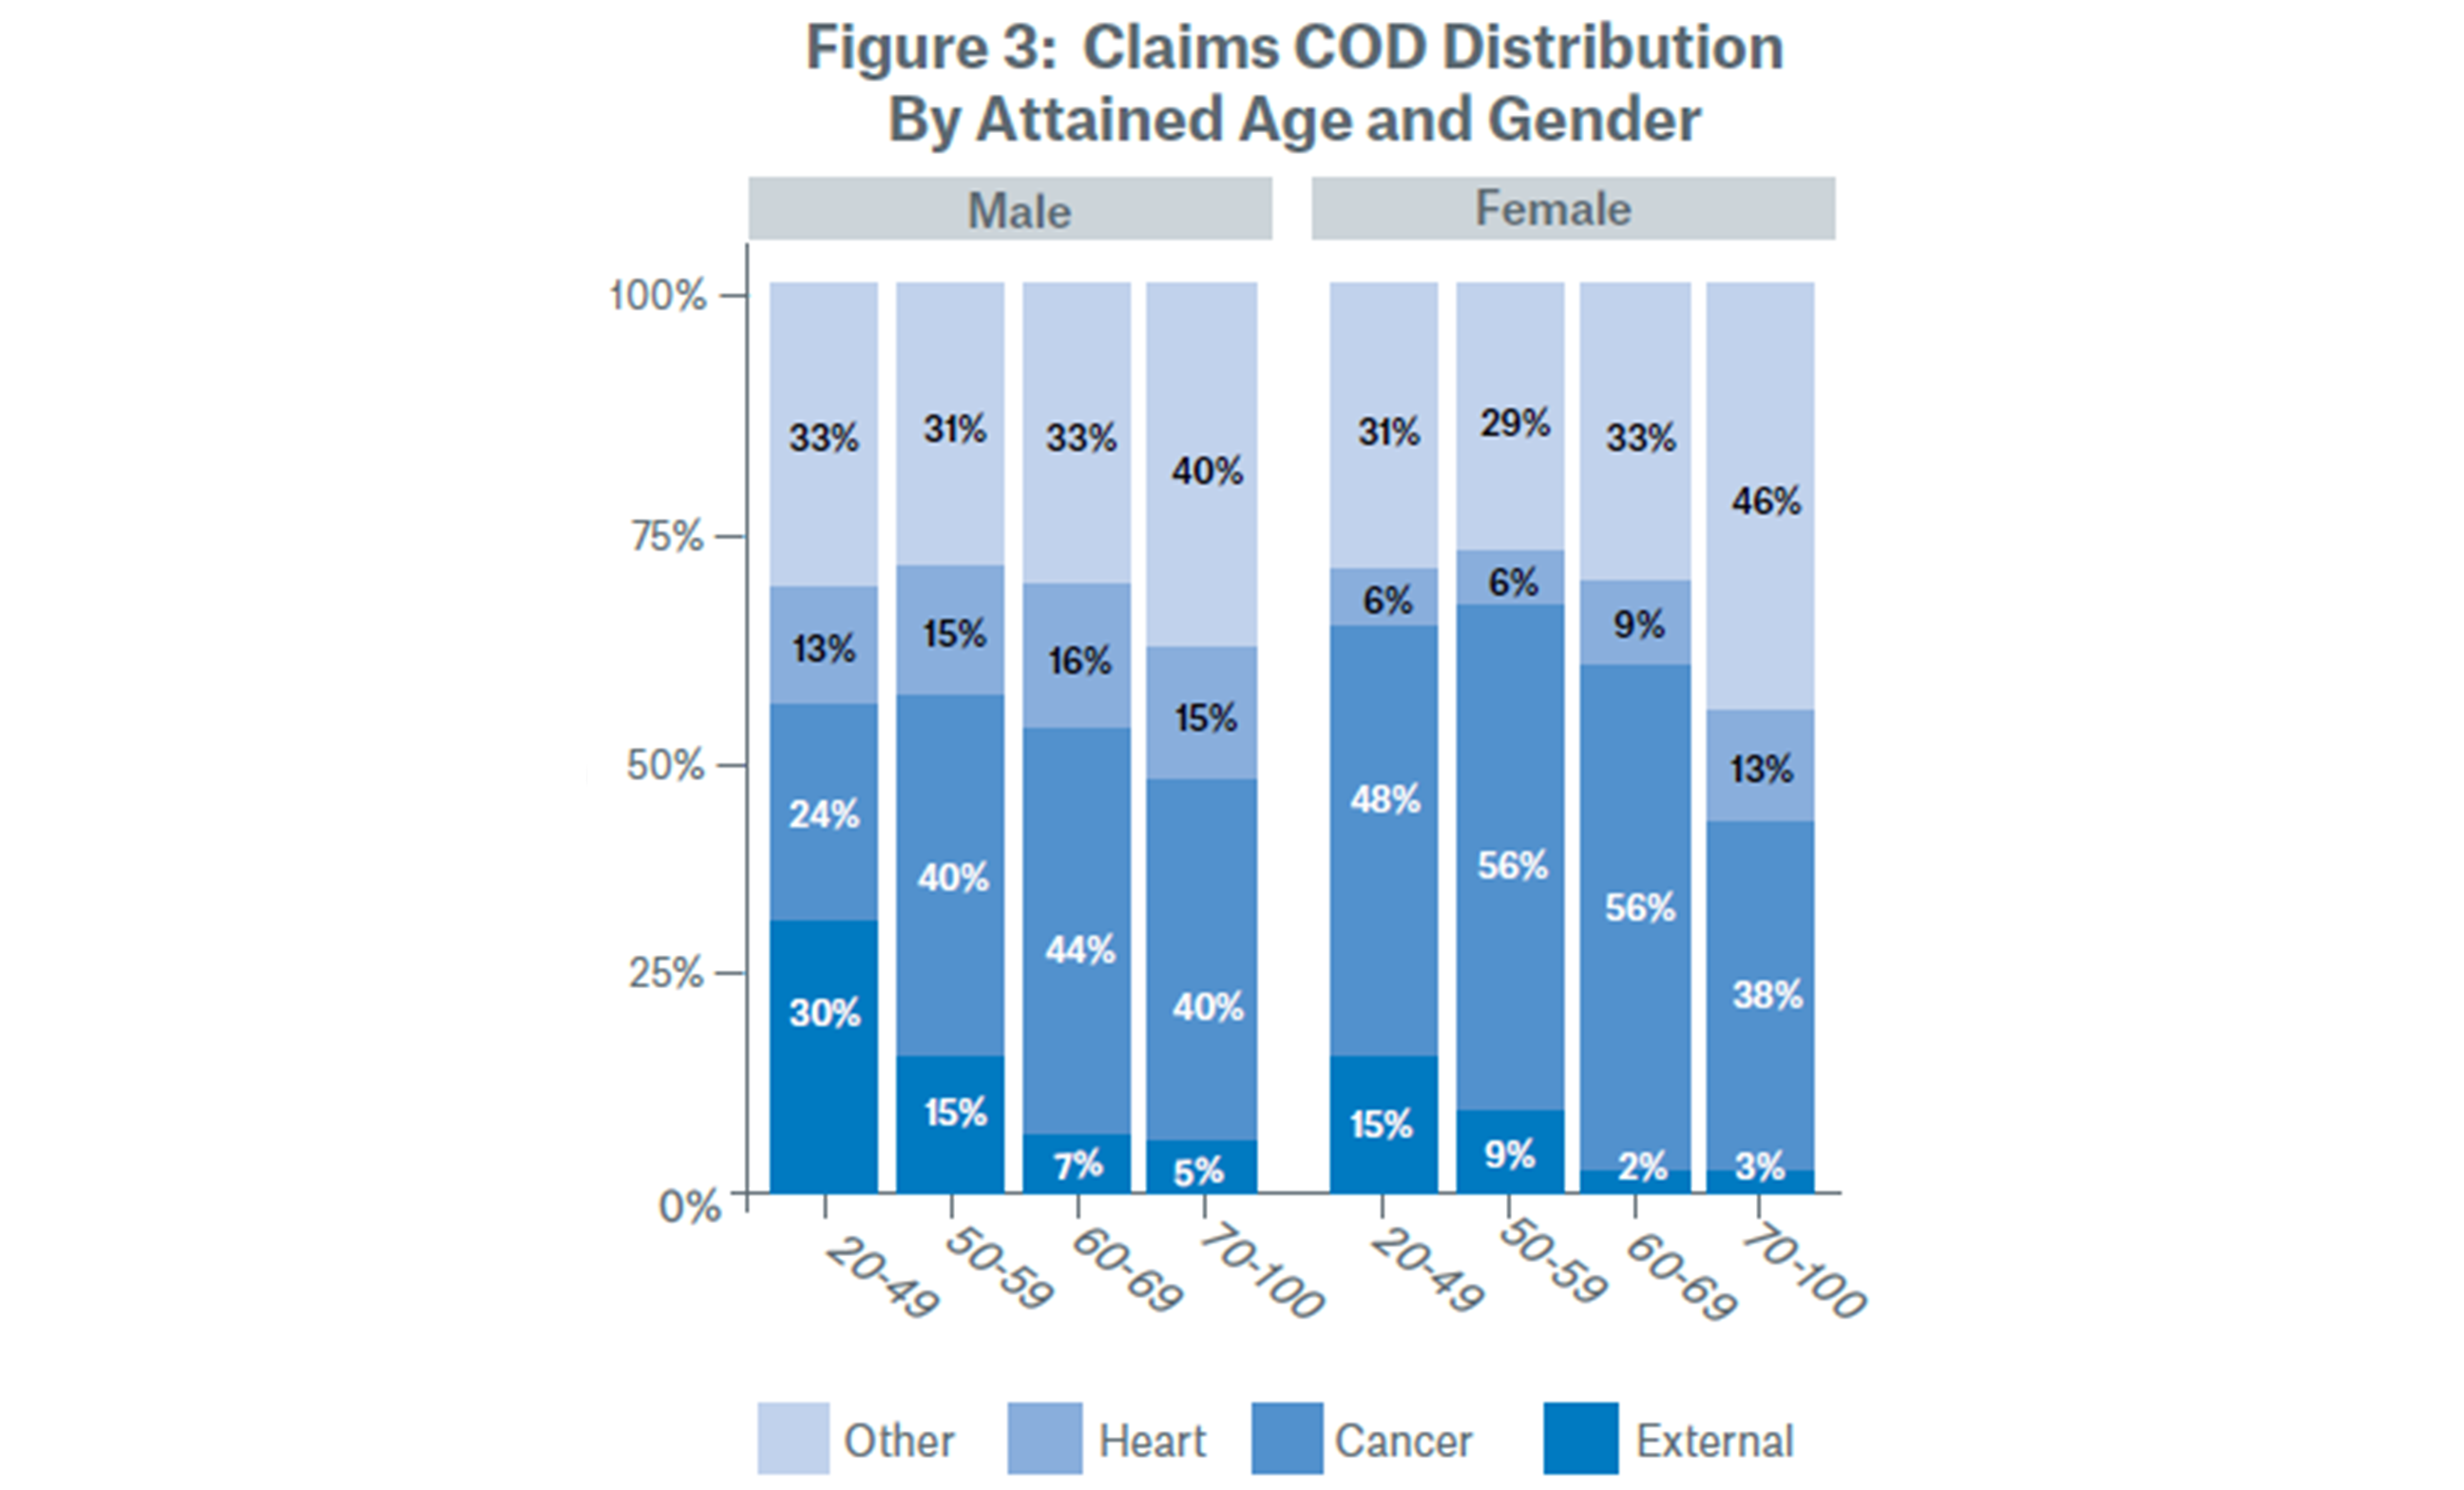 Claims COD Distribution By Attained Age and Gender